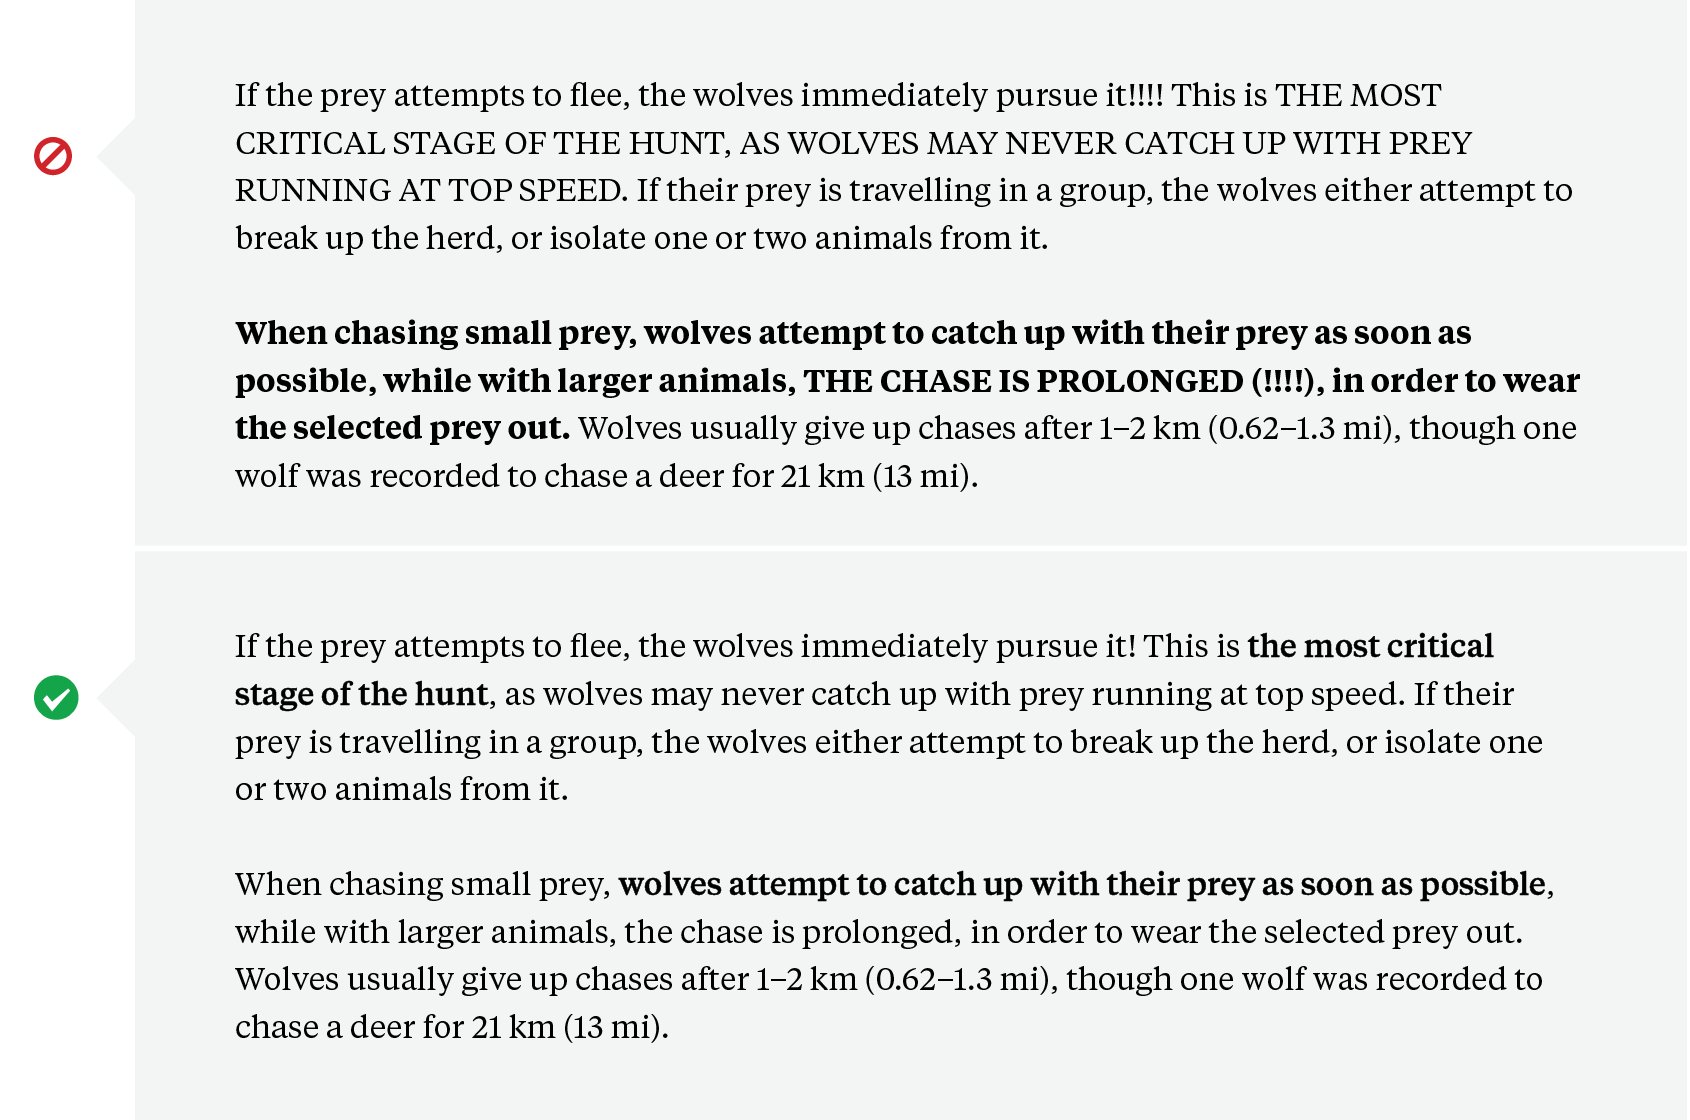 Text Formatting: Fixing too many caps and exclamation marks